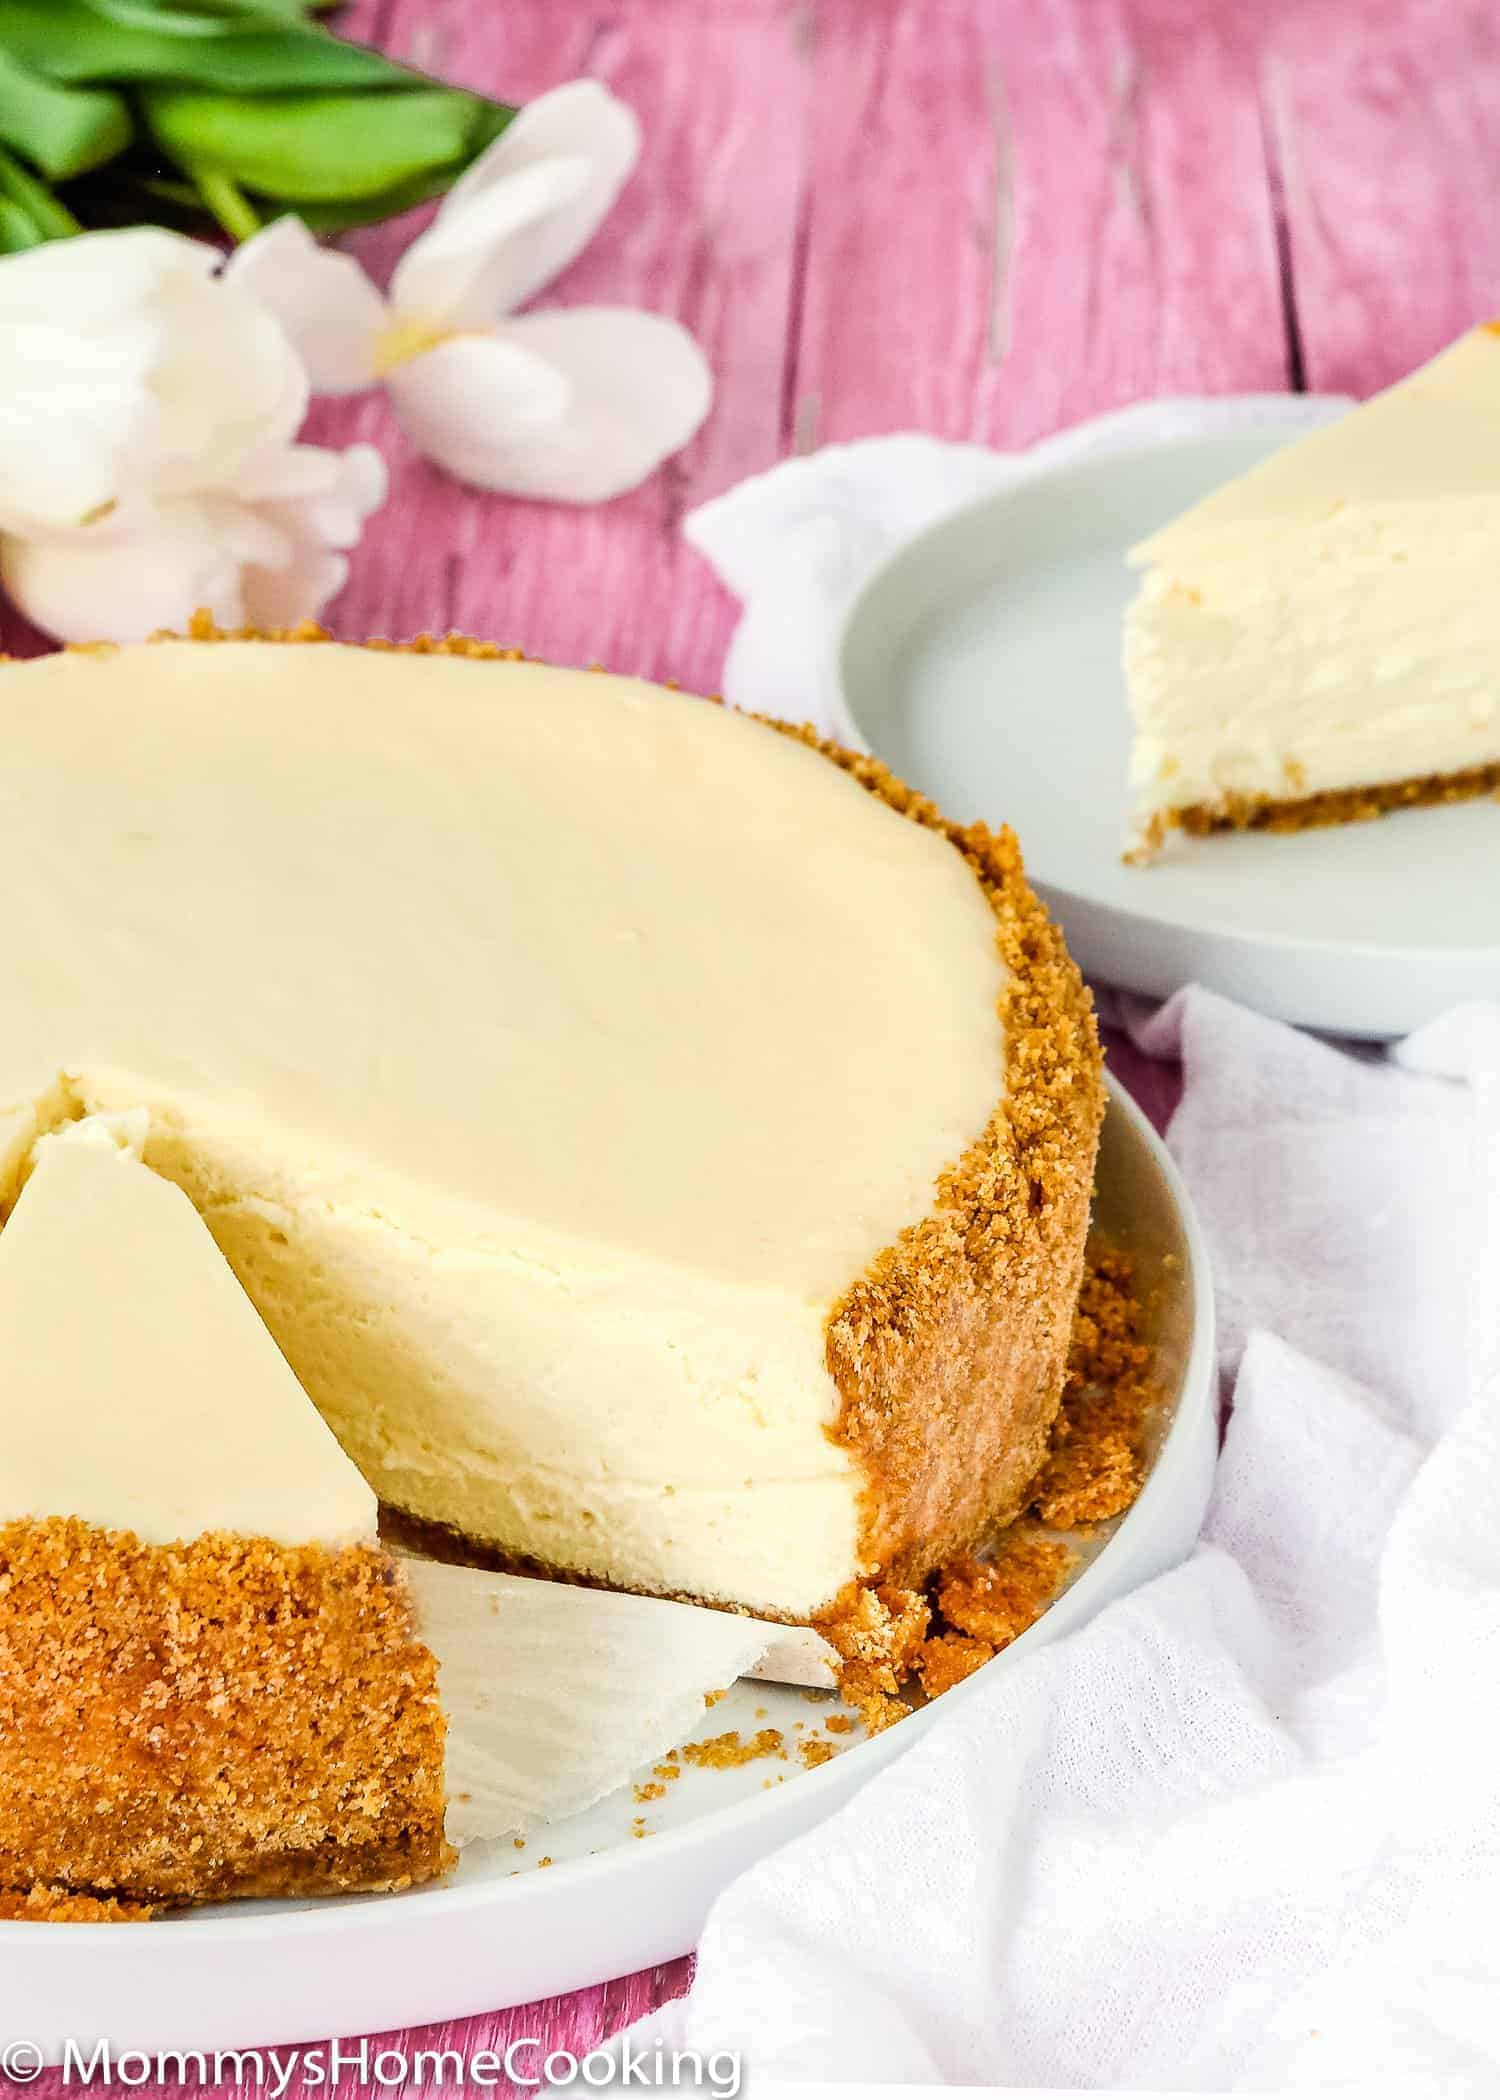 This recipe makes the BEST Eggless Cheesecake you will ever try! It's wonderfully creamy and silky, and it's also one of the easiest to make! A delicious and melt-in-your-mouth classic dessert that will leave everyone asking for seconds. Must try! https://mommyshomecooking.com